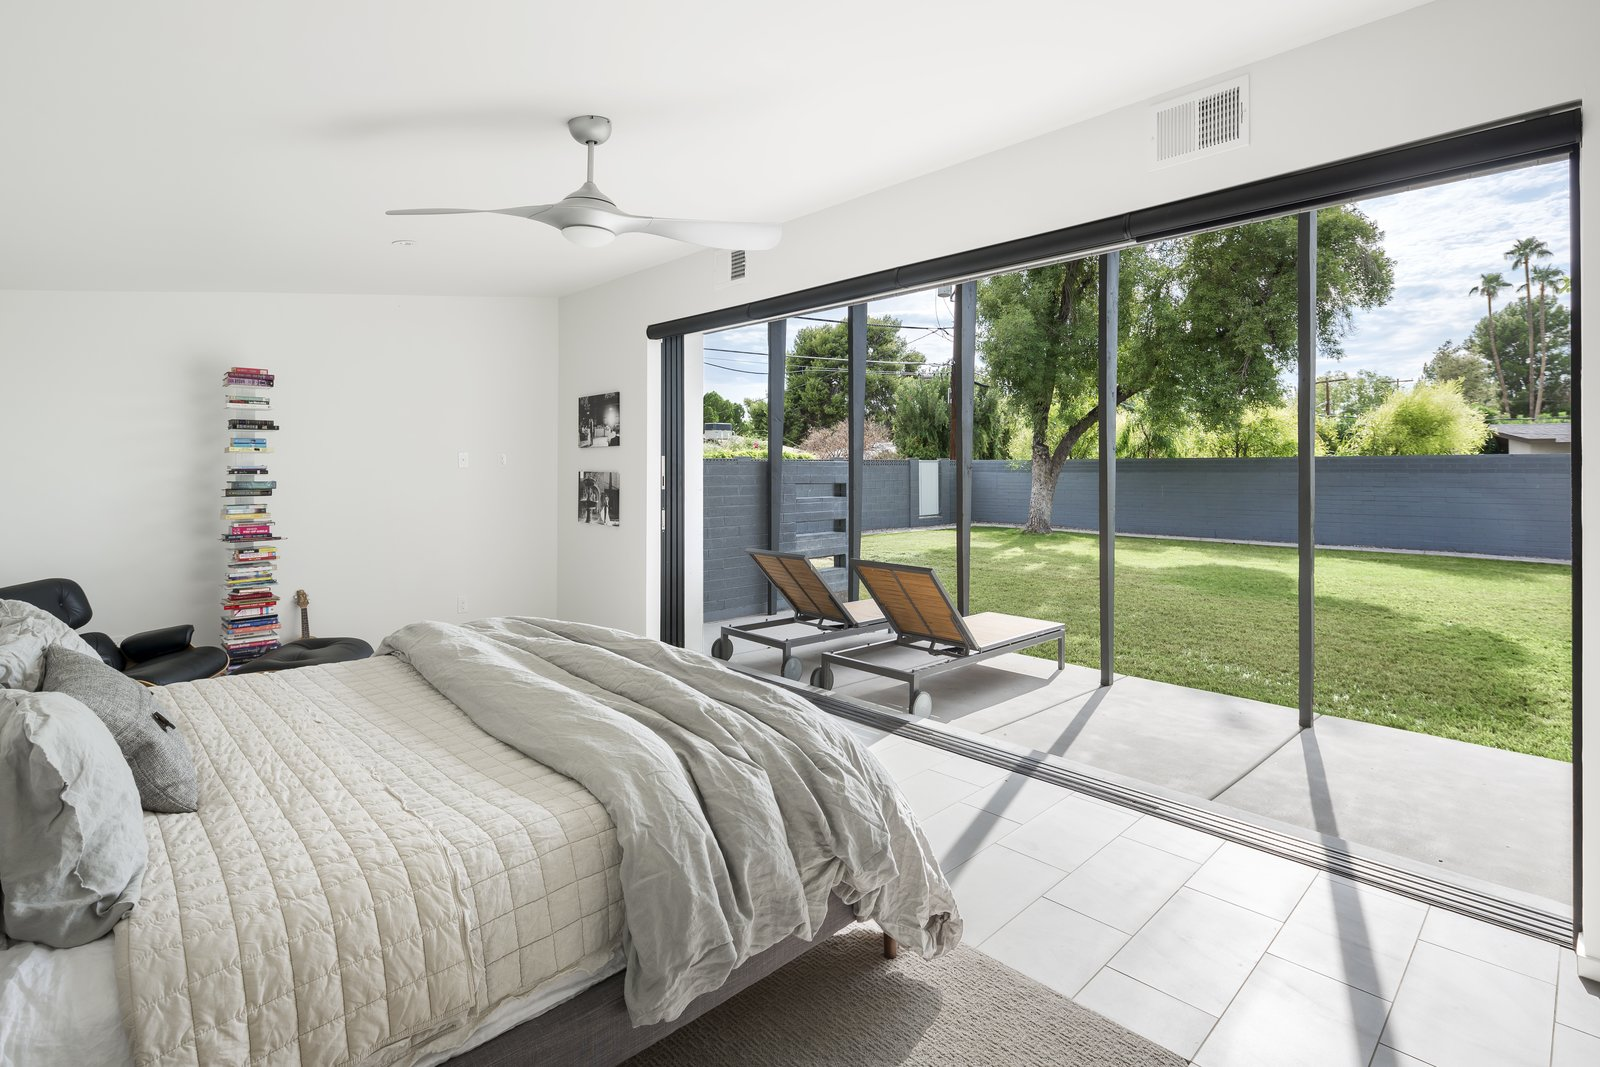 Bedroom, Bed, Ceiling, and Porcelain Tile Master bedroom opened up to the patio and yard beyond  Best Bedroom Bed Porcelain Tile Photos from Schreiber House